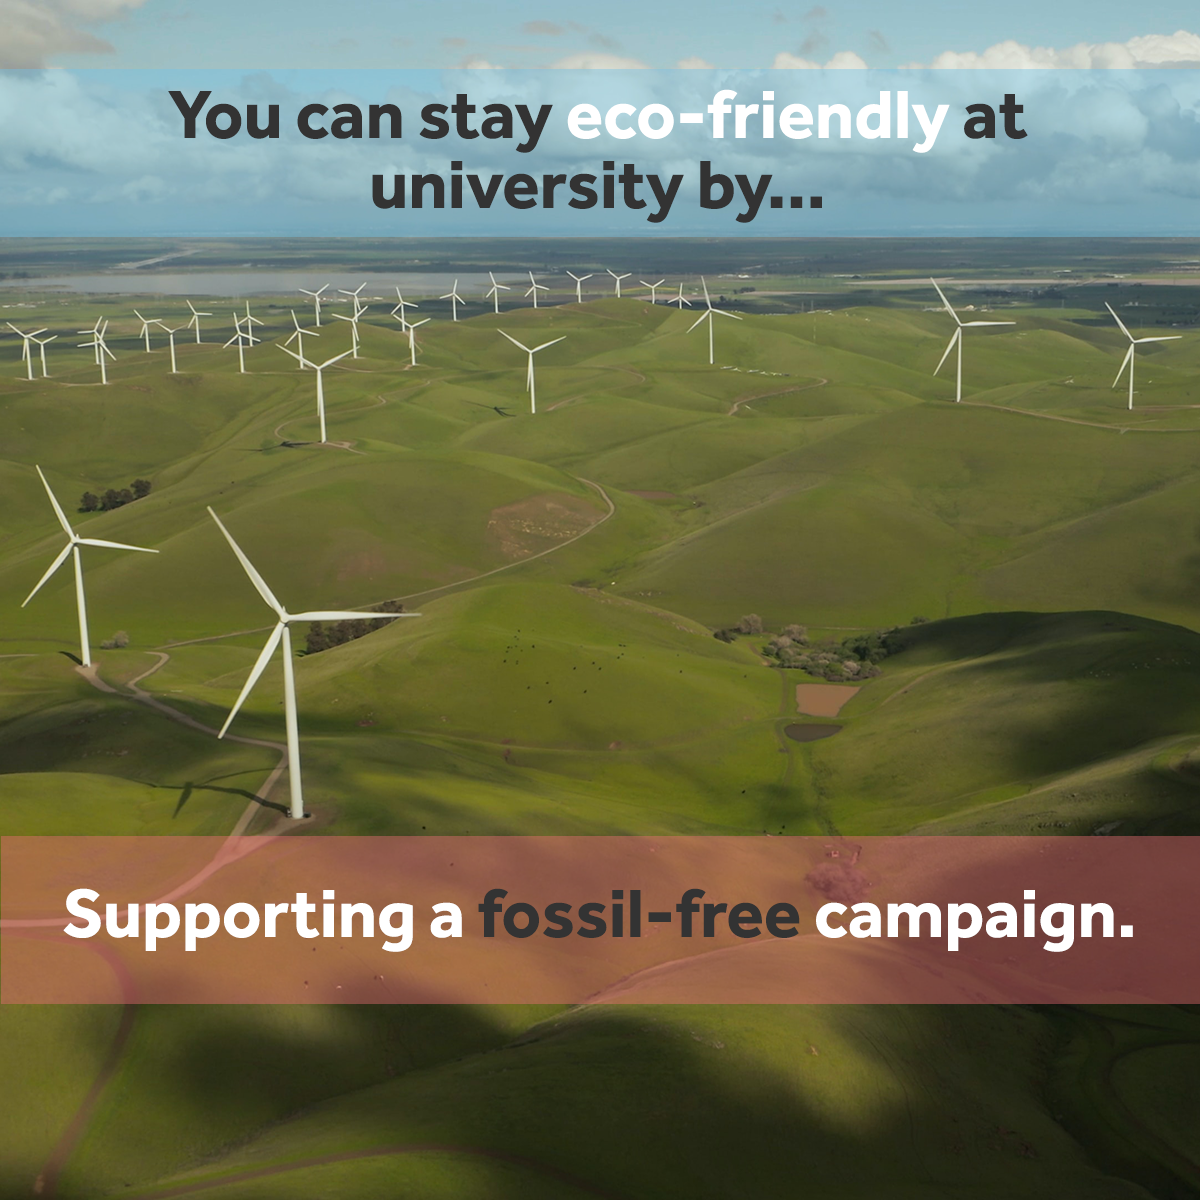 Support a fossil-free campaign - eco friendly at university